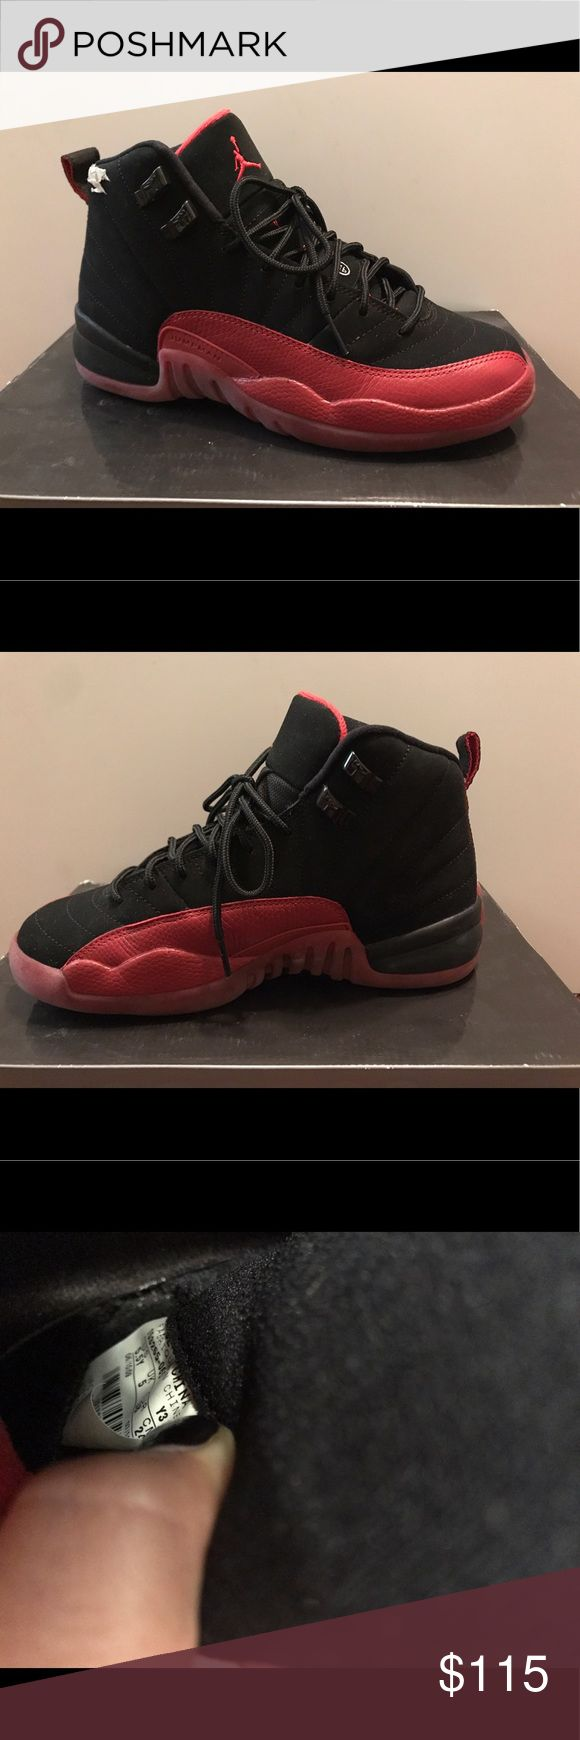 Jordan 12's Red and Black 12s Suede and leather size 5.5 Air Jordan Shoes Athletic Shoes